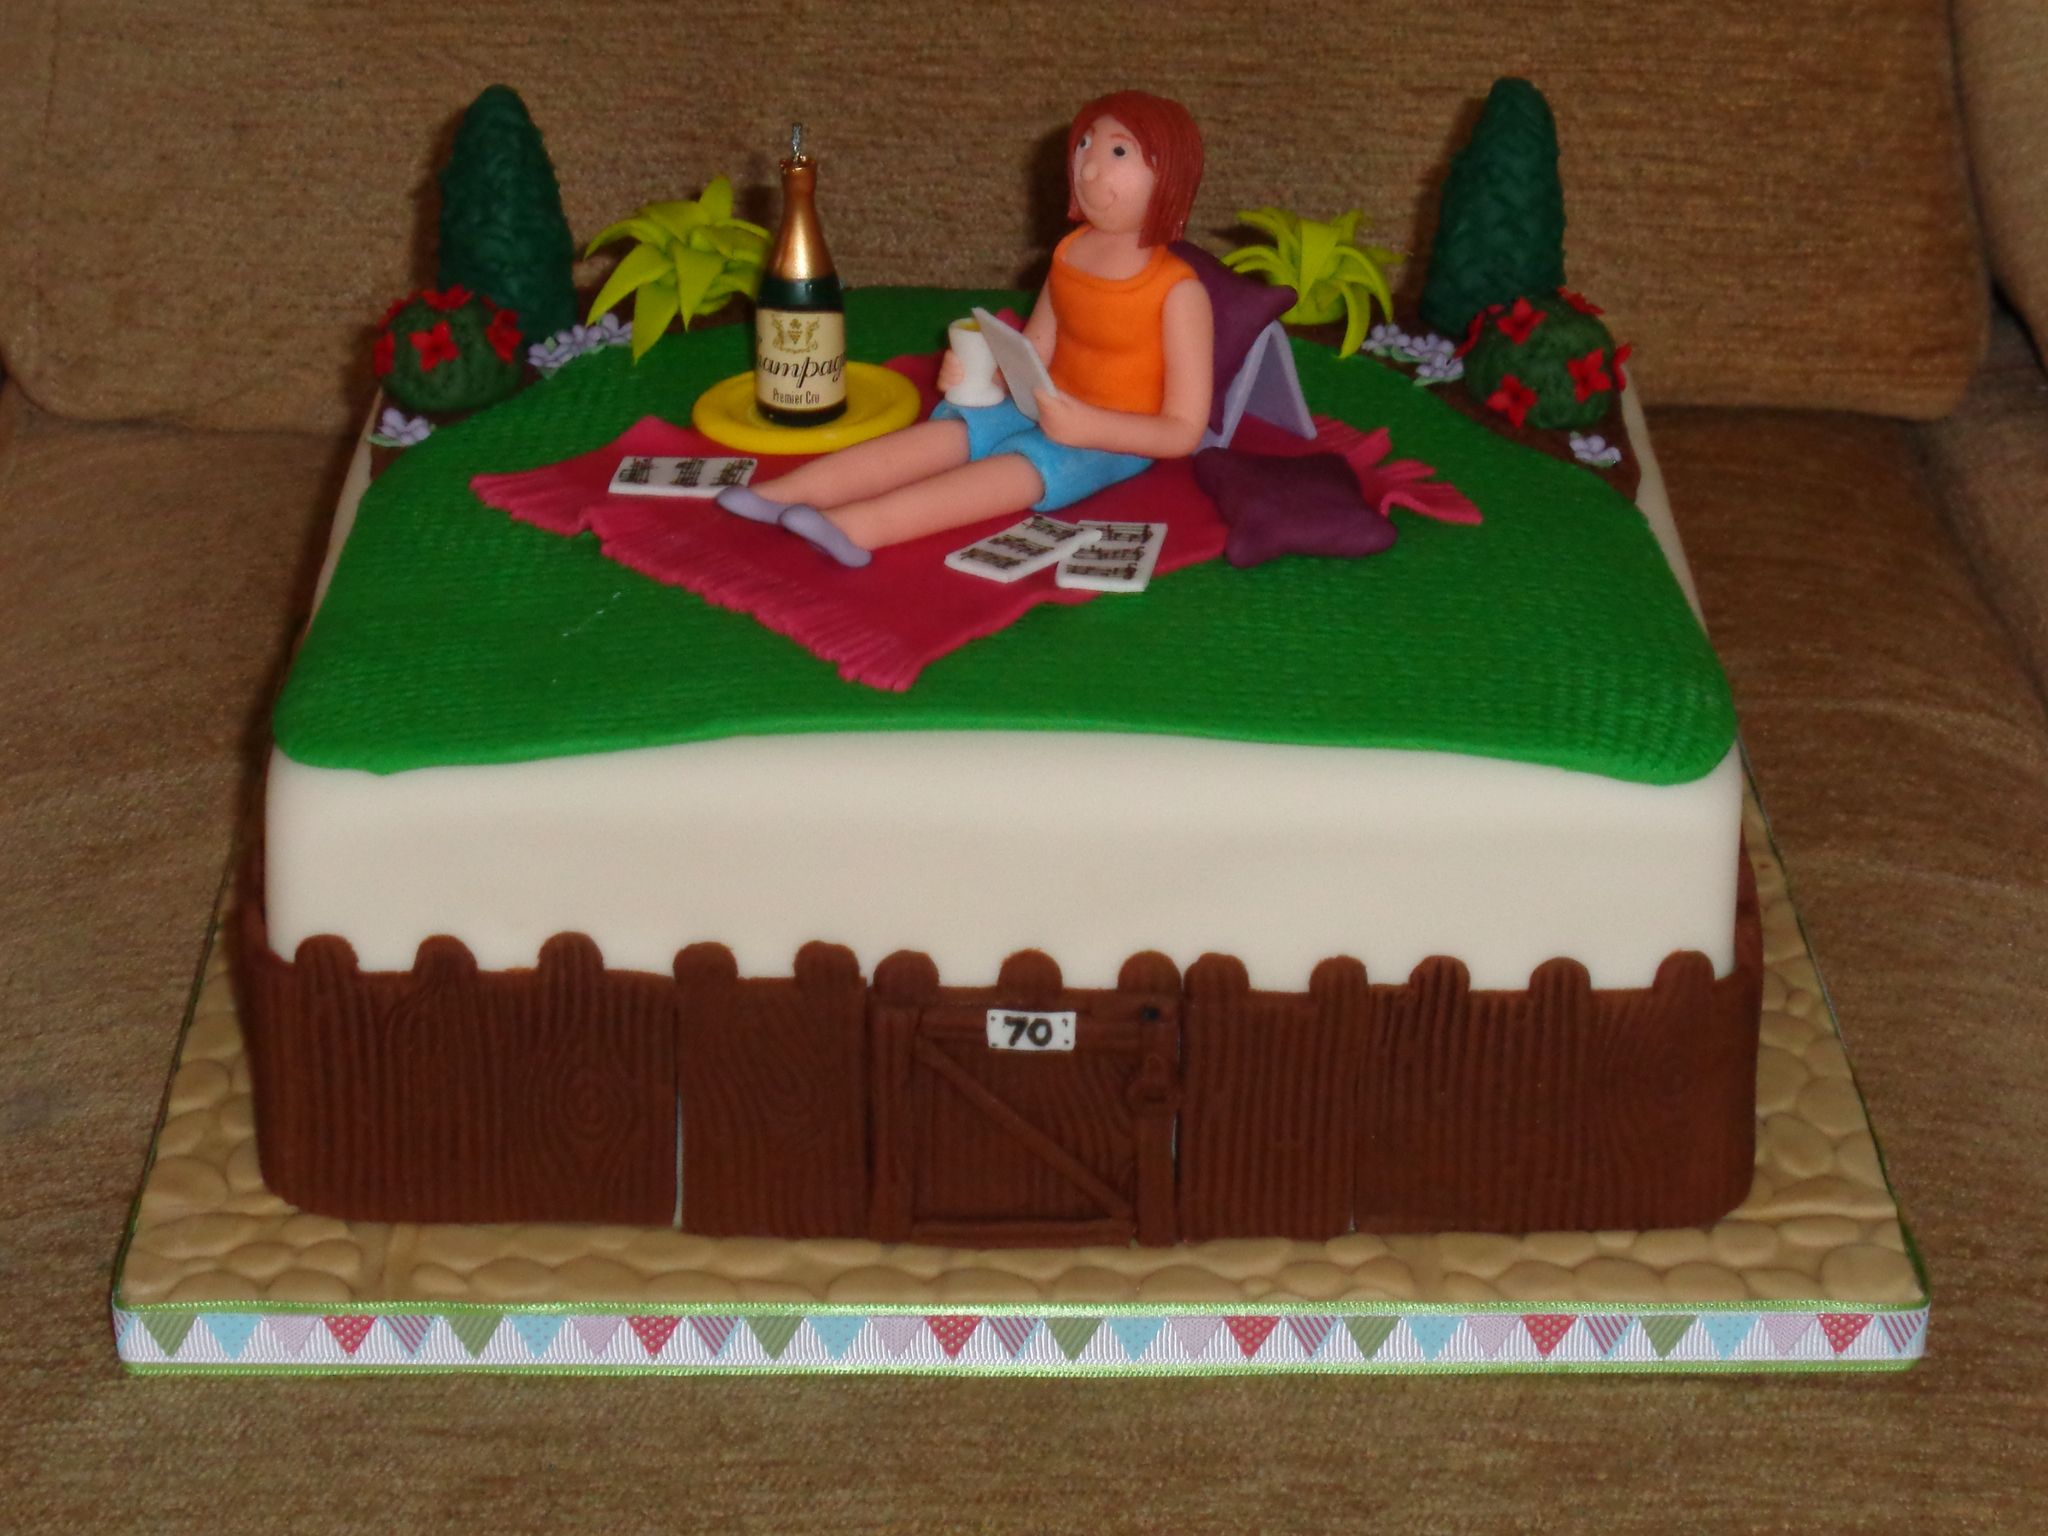 Birthday cake with sugar model in garden theme | Made by Chrissies ...